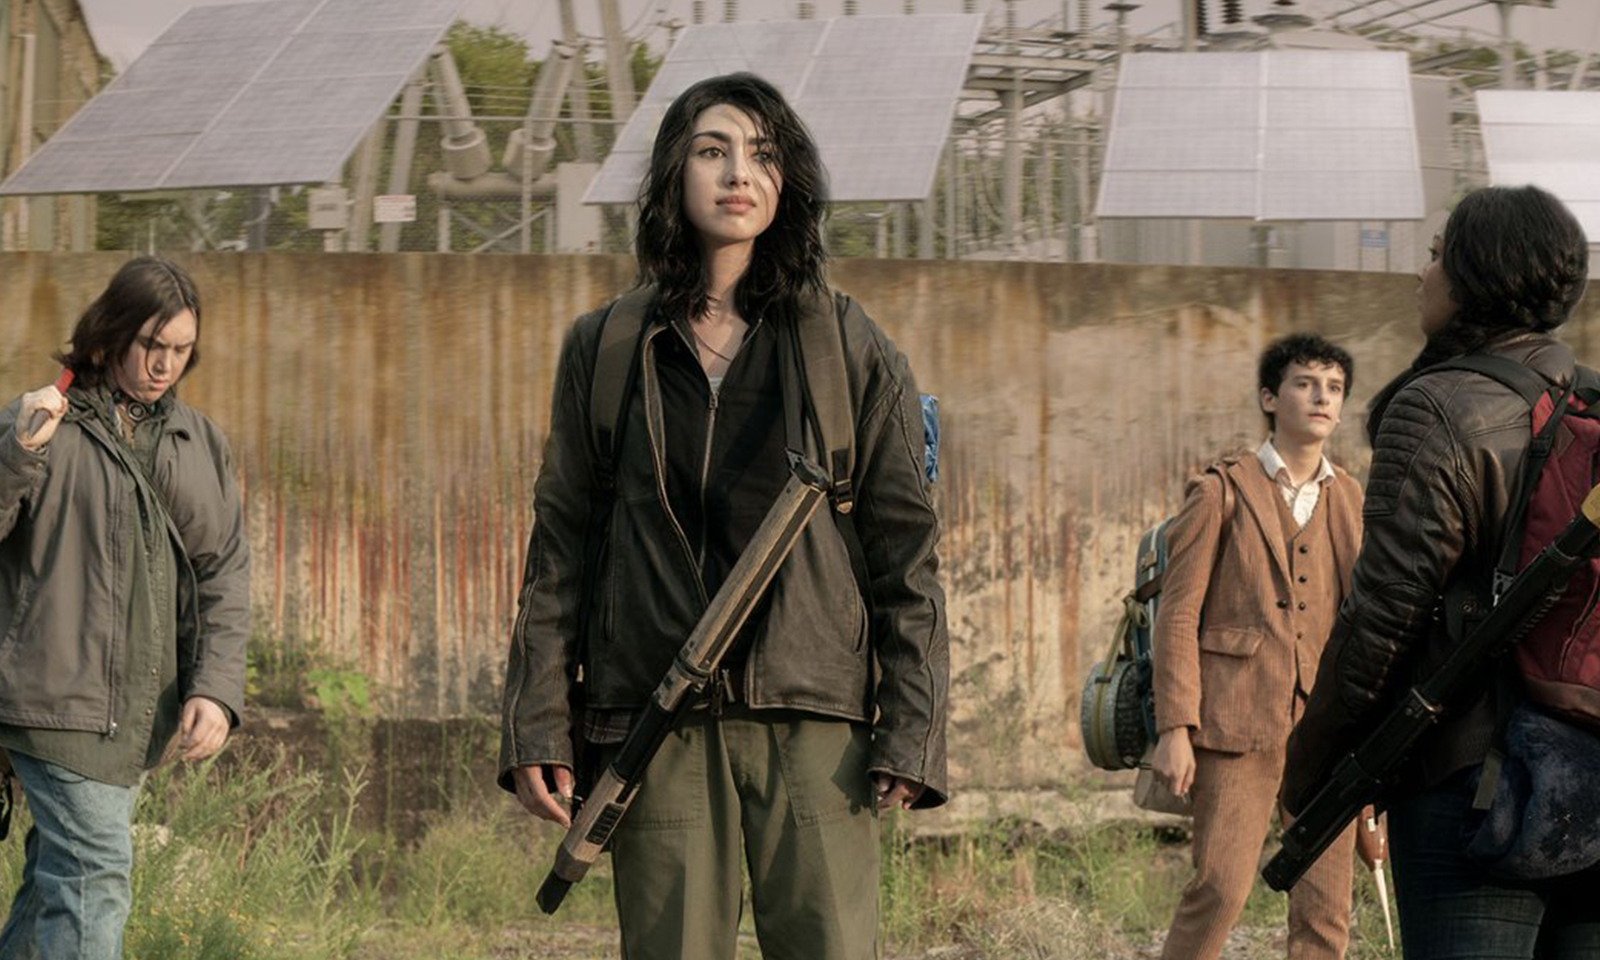 Iris, Hope, Elton e Silas juntos no lado de fora do Campus Colony em imagem do primeiro episódio da 1ª temporada de The Walking Dead: World Beyond